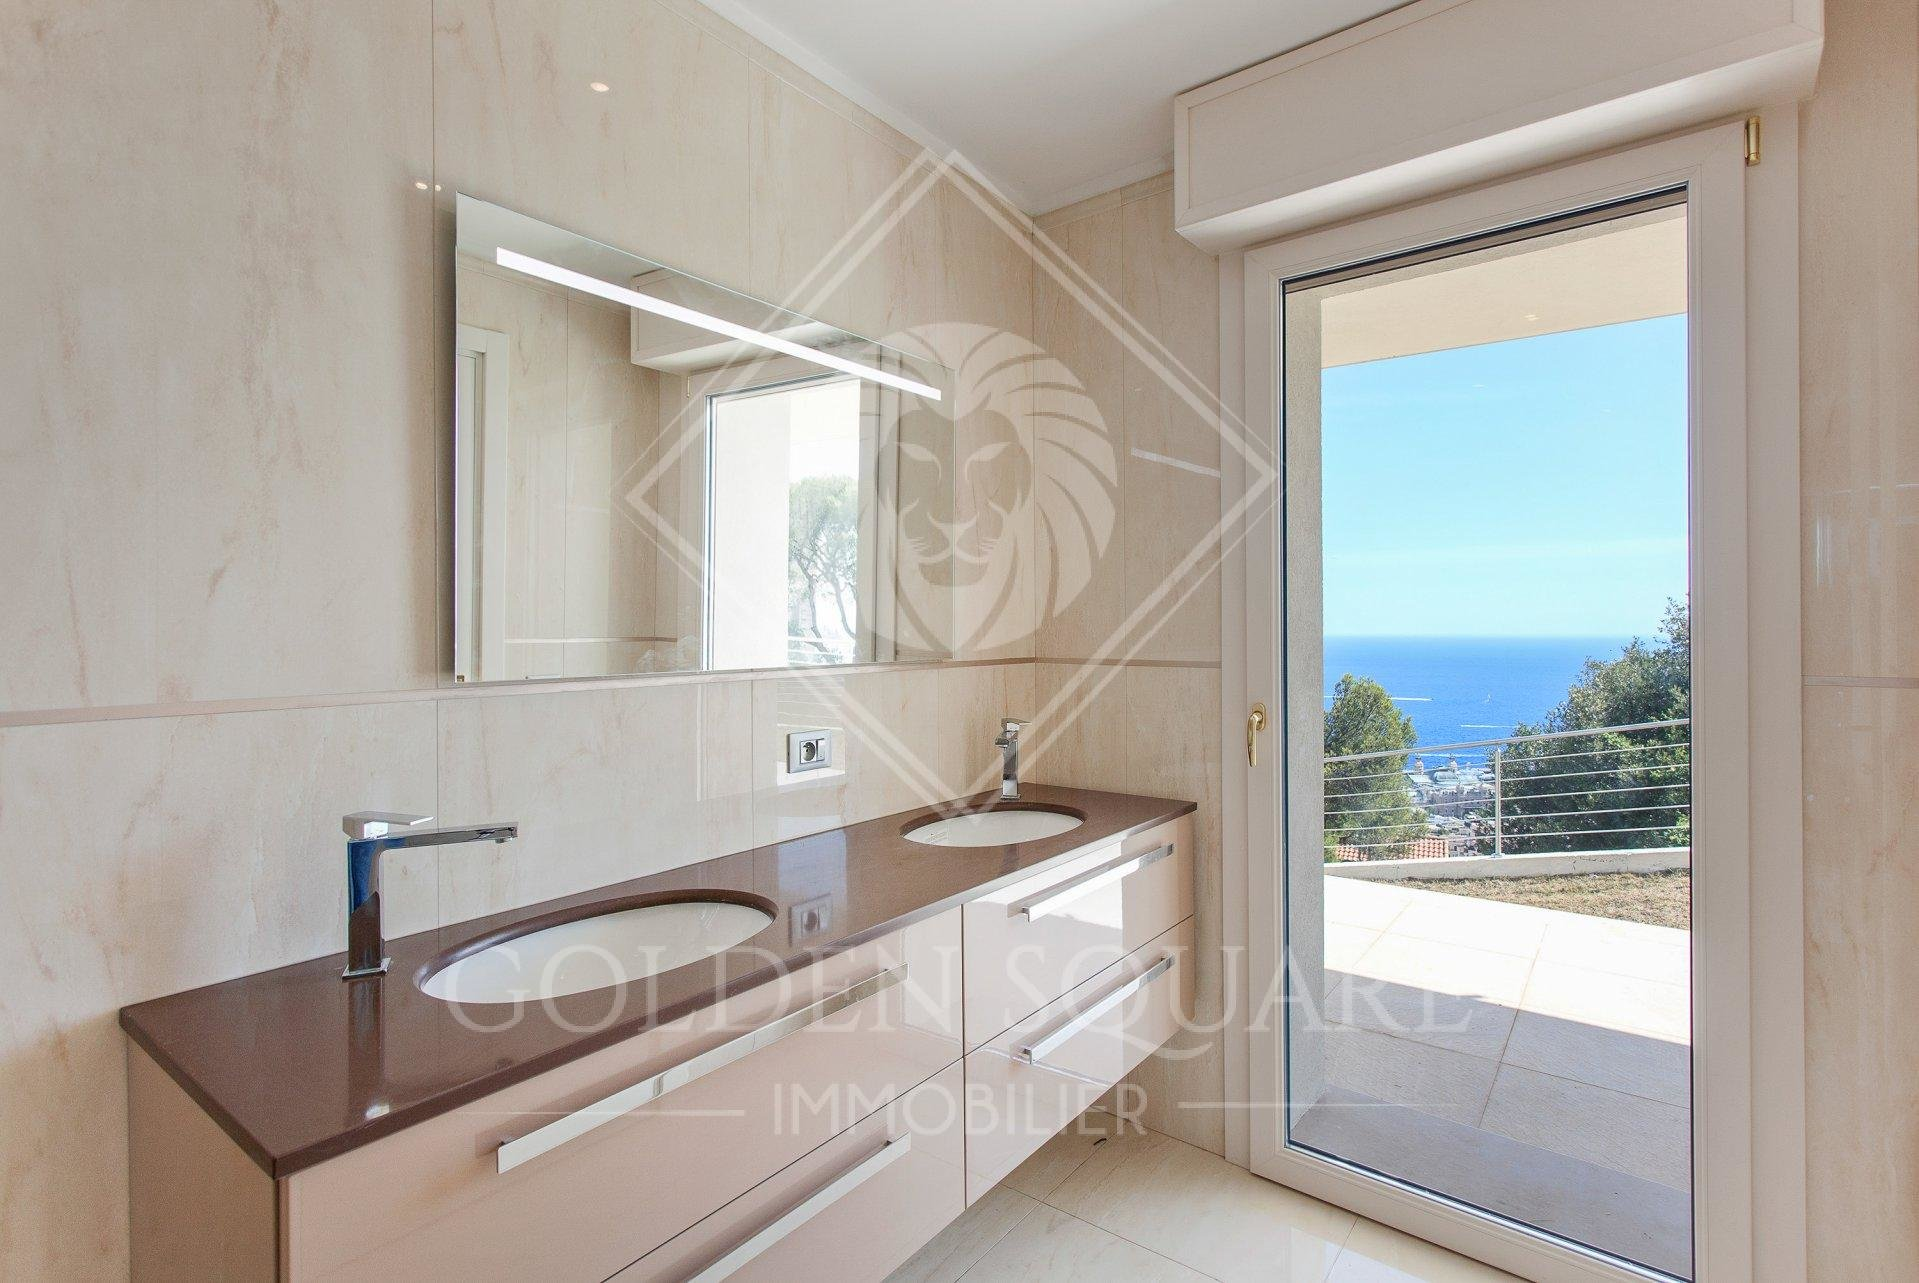 BEAUSOLEIL - 3 BEDROOM - CONTEMPORARY VILLA OVERLOOKING MONACO